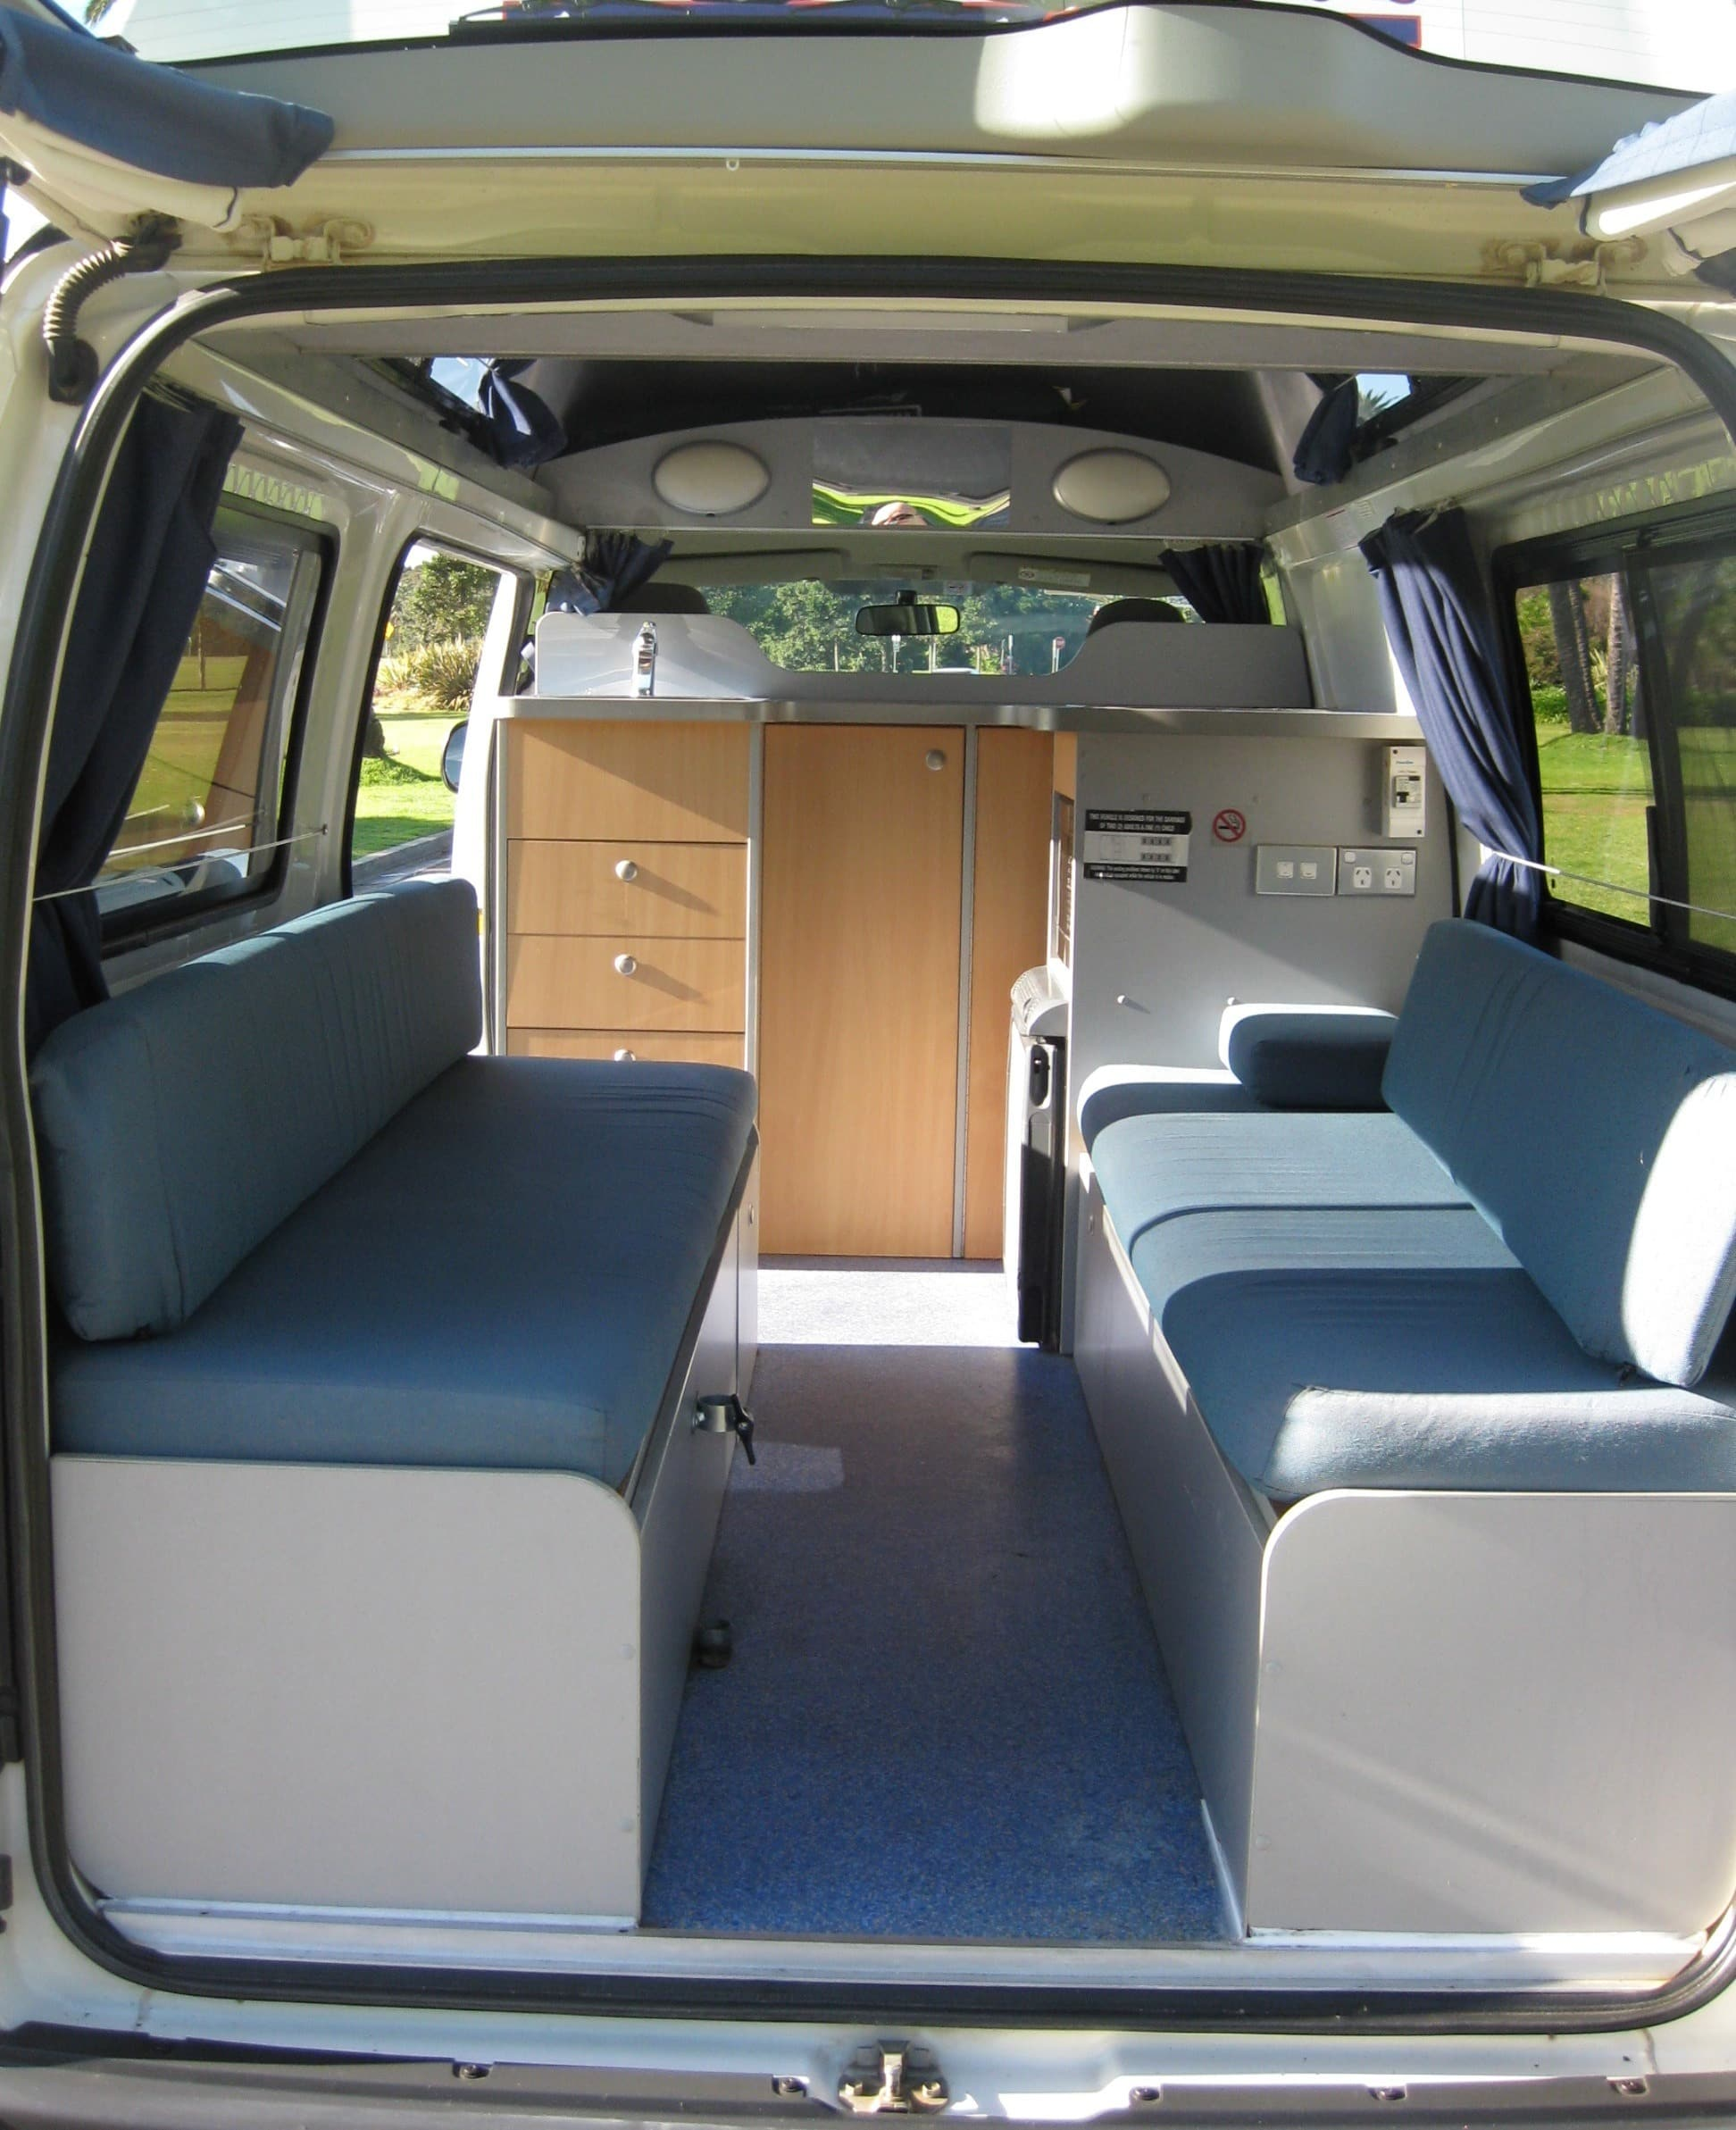 hitop campervan hire travellers autobarn. Black Bedroom Furniture Sets. Home Design Ideas